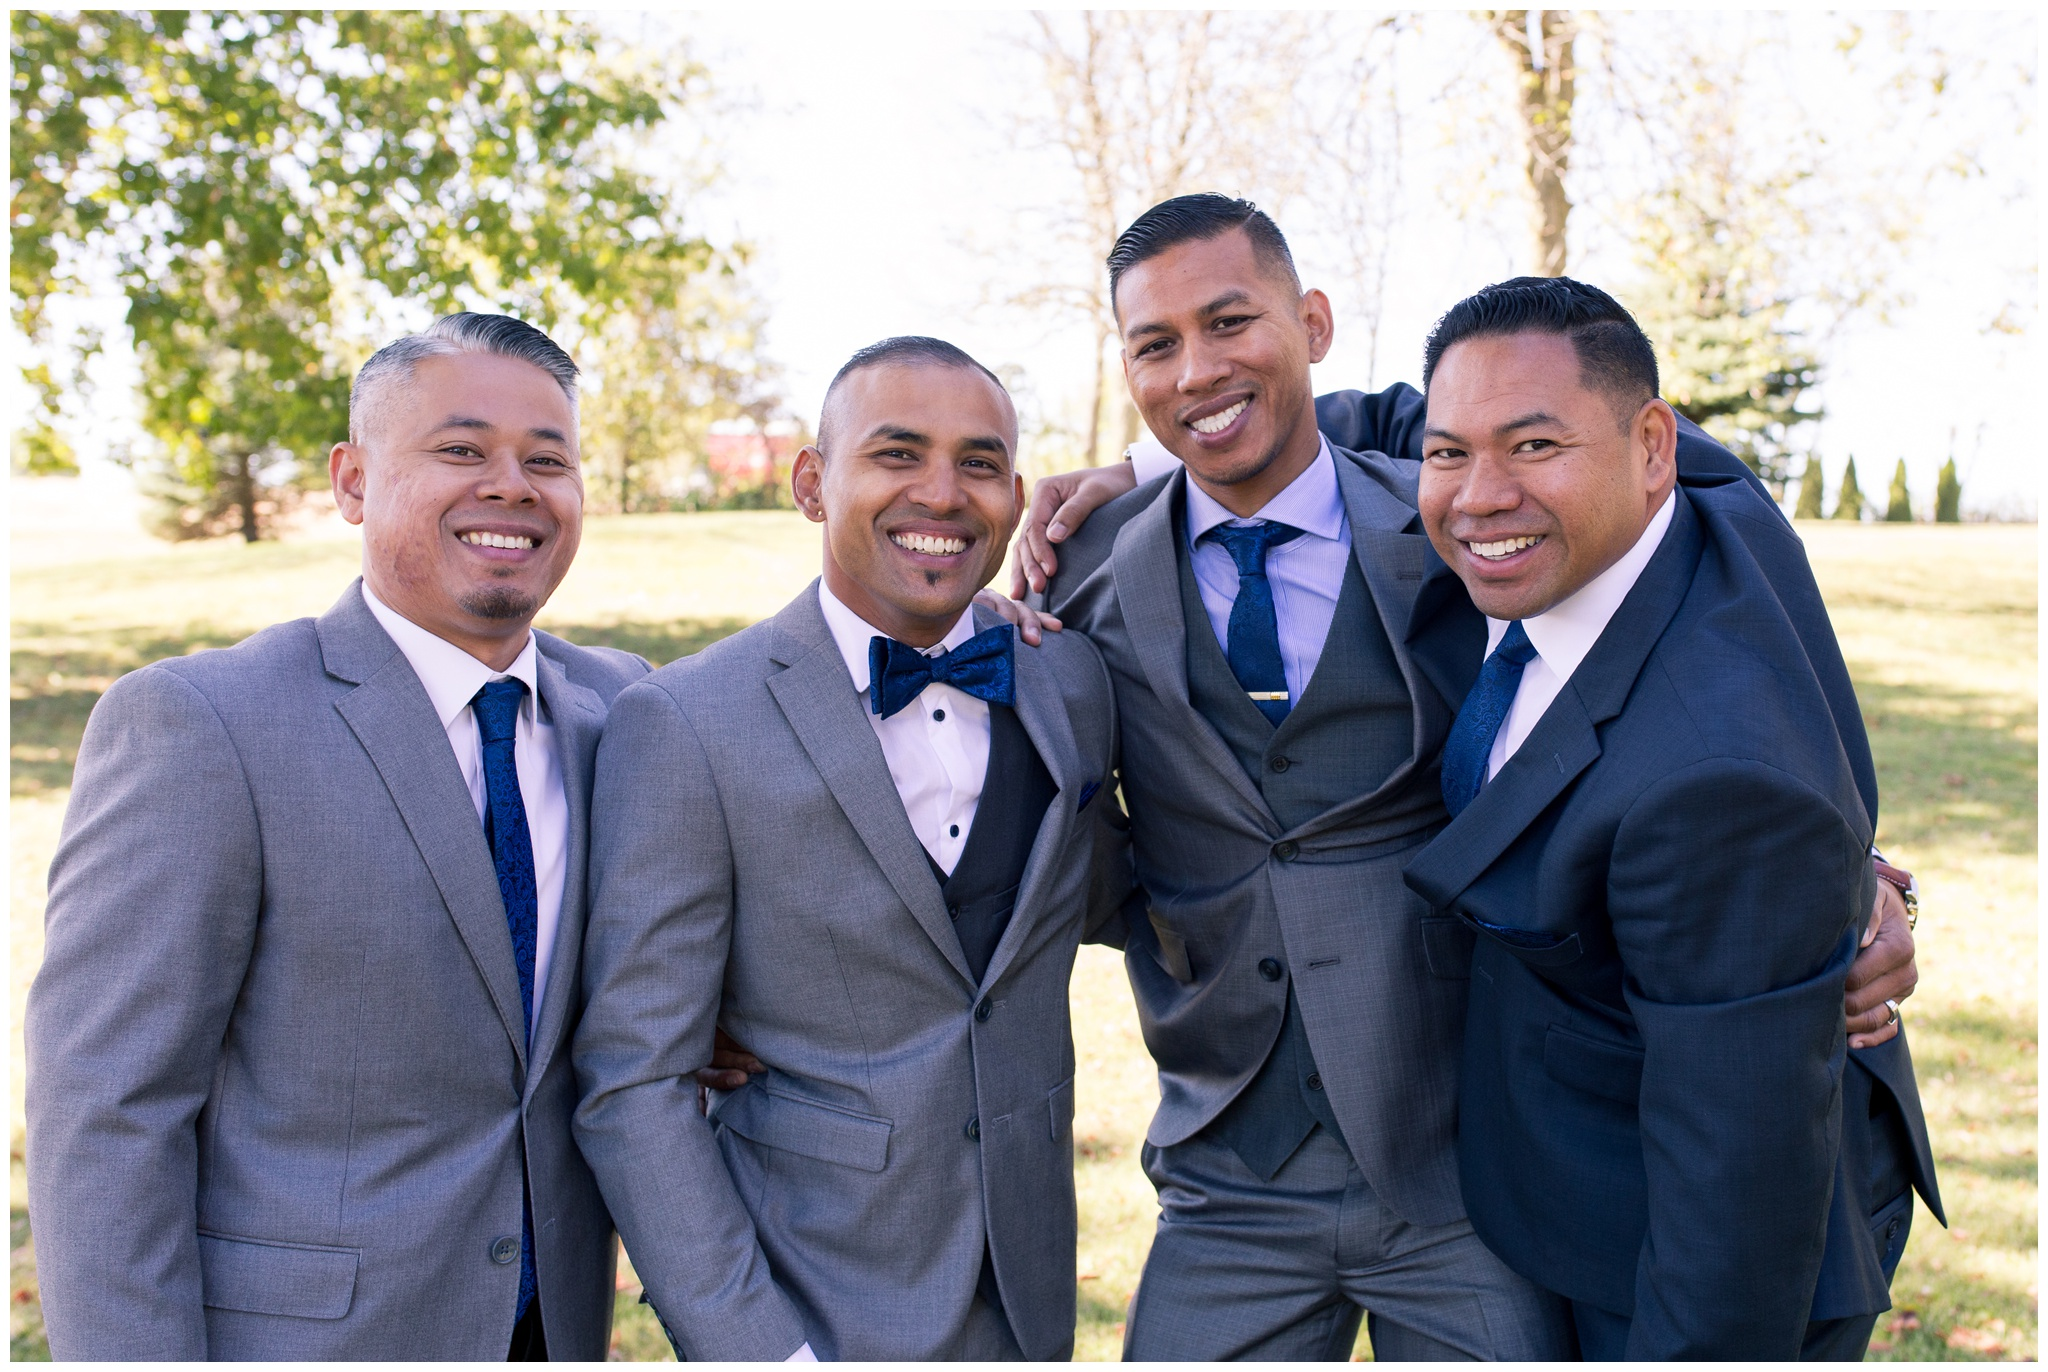 groom and groomsmen laughing together before wedding ceremony in Greenville Ohio